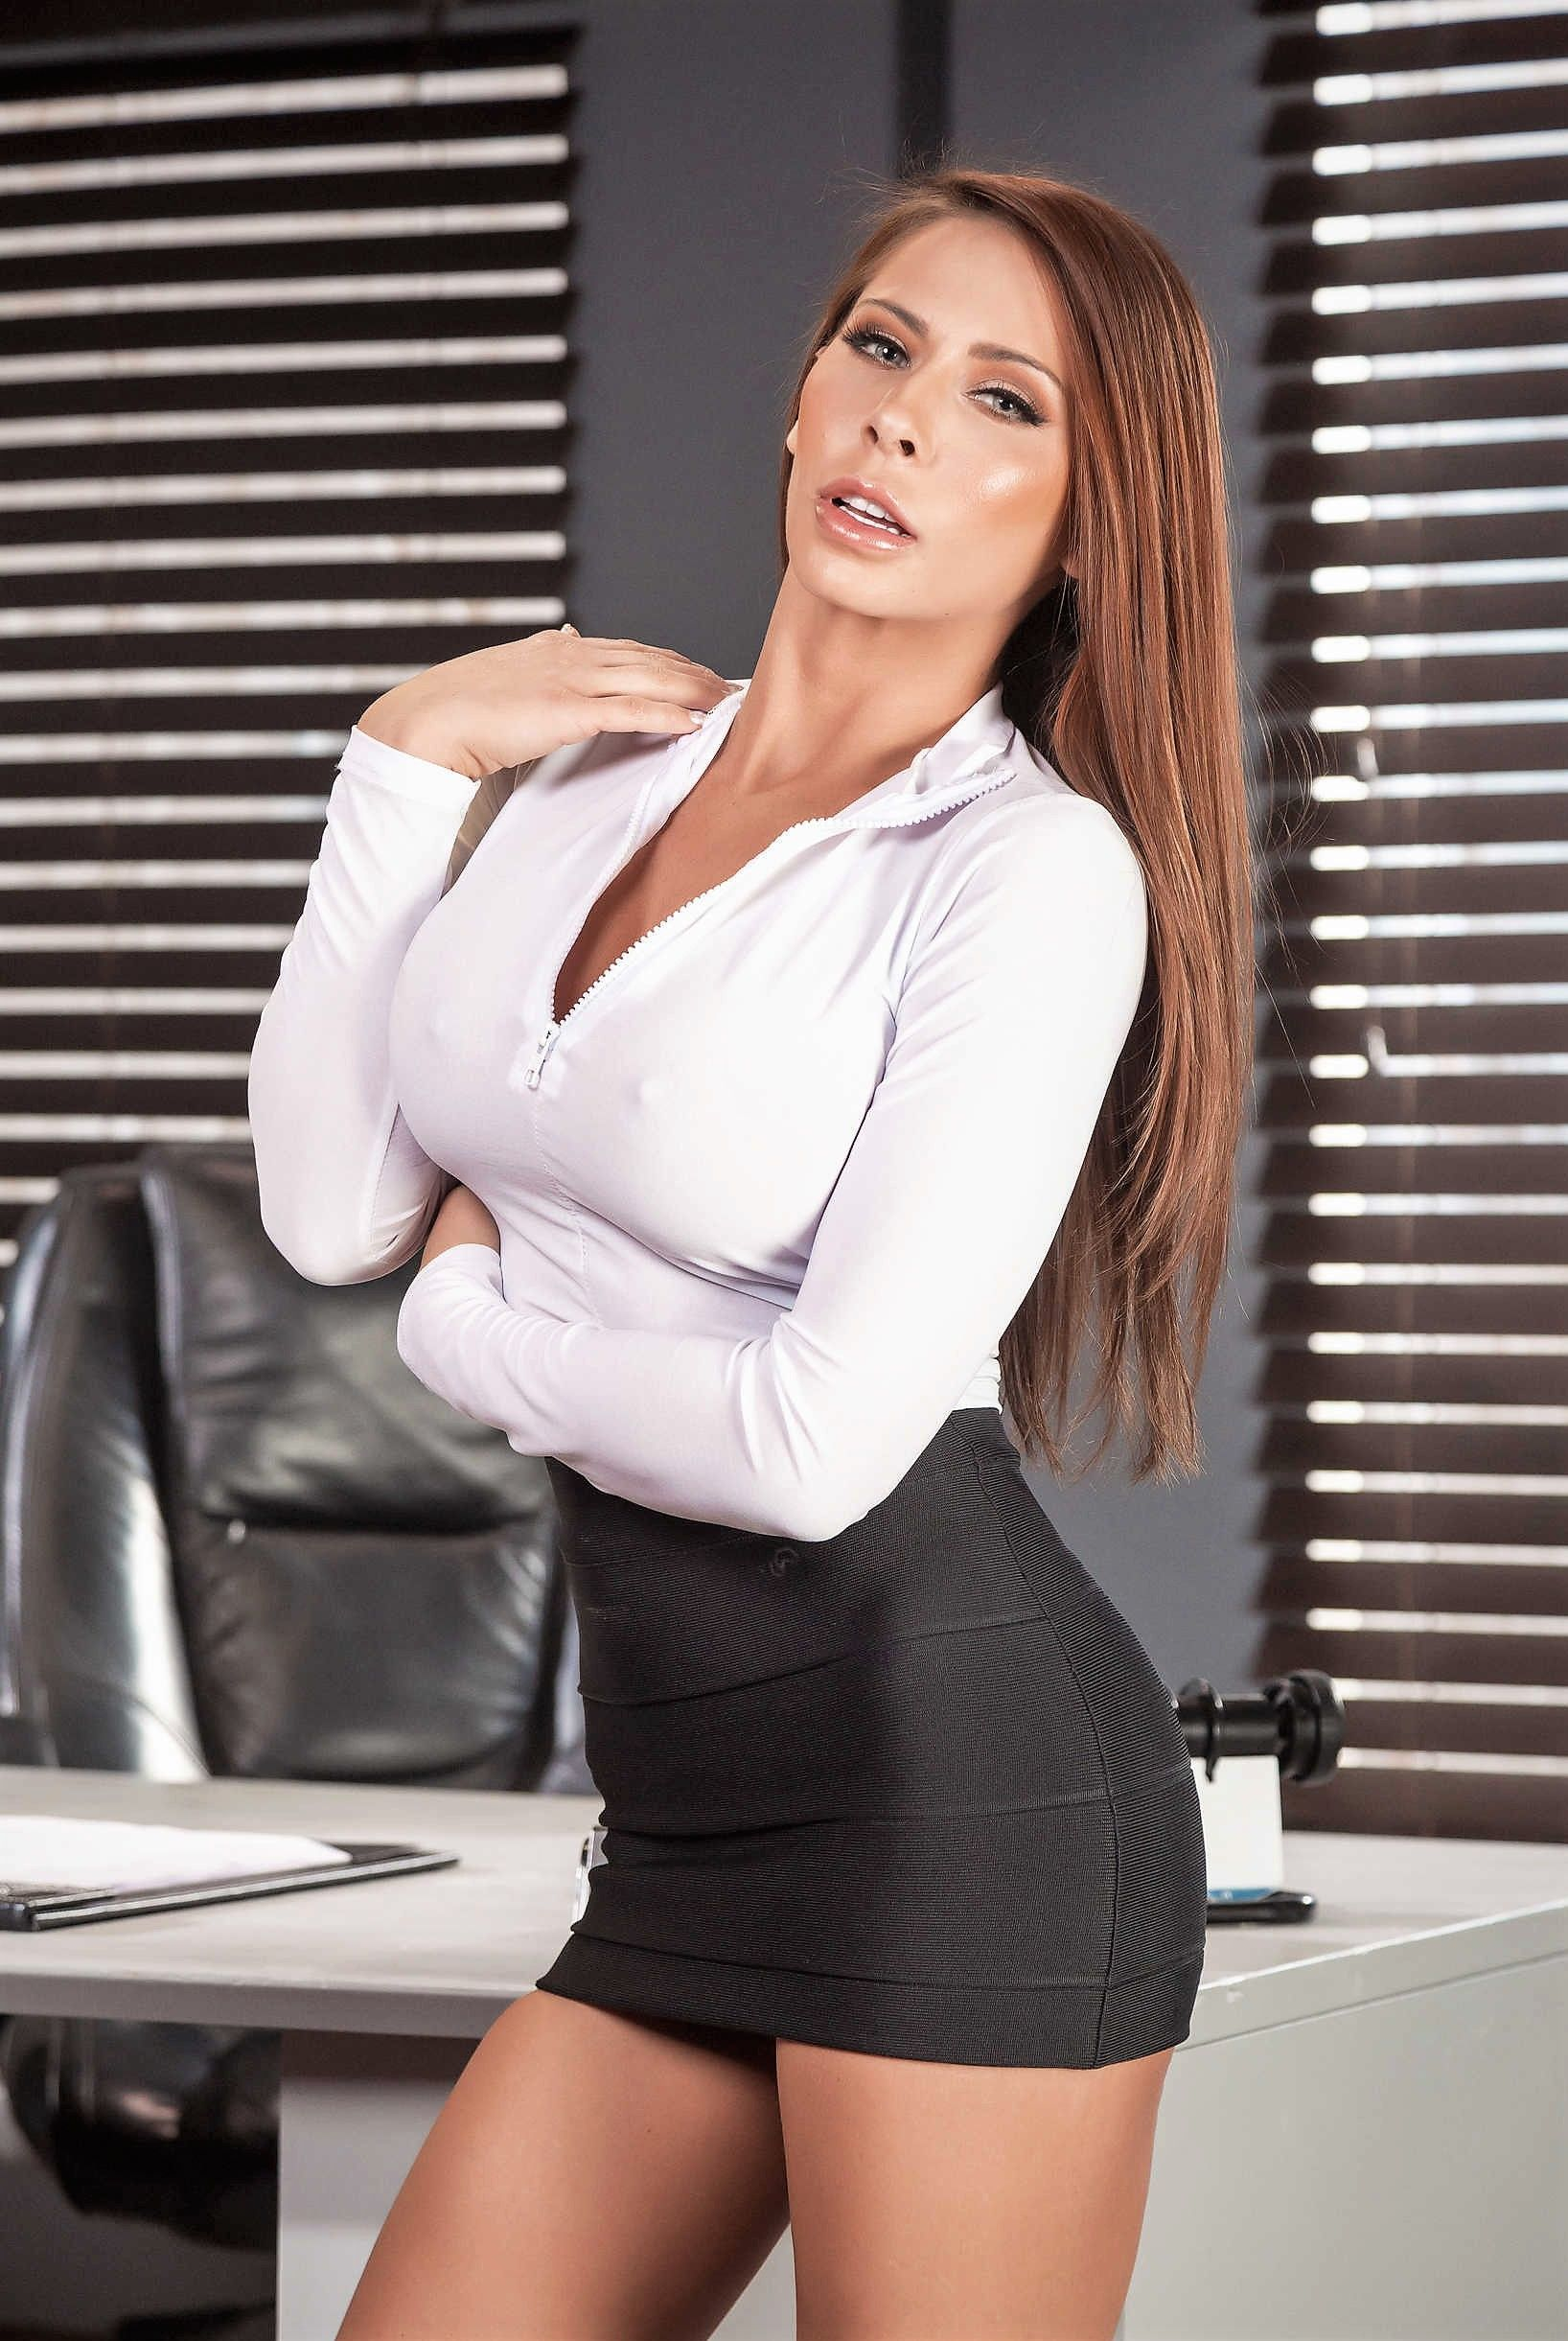 Madison Ivy Pictures photo 1